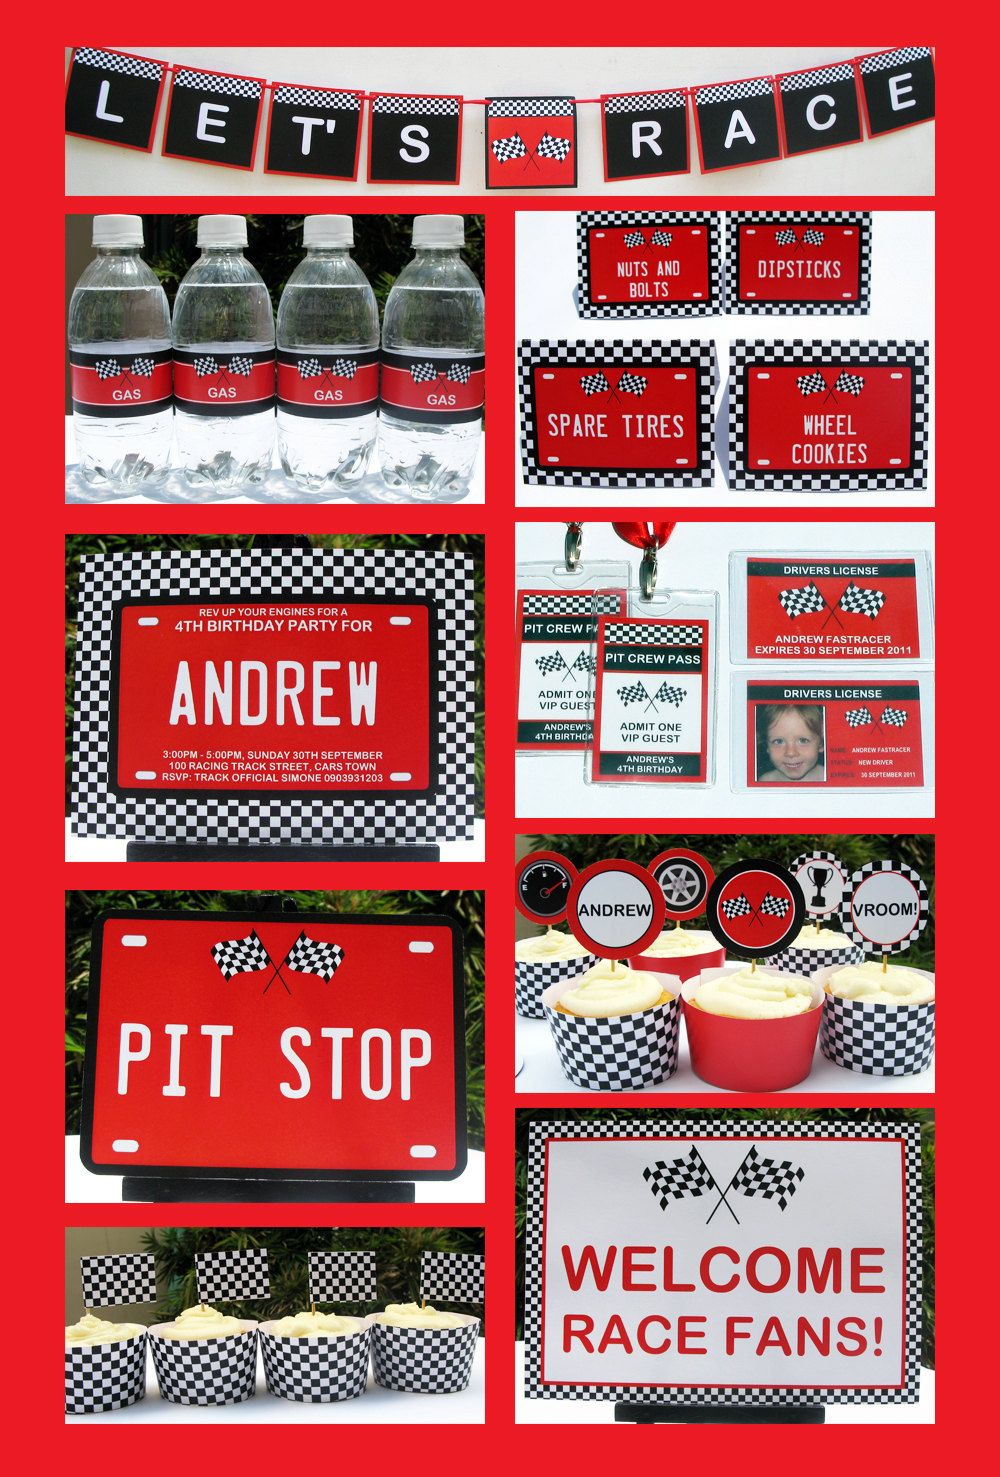 Race Car Party Invitation & Decorations full Printable